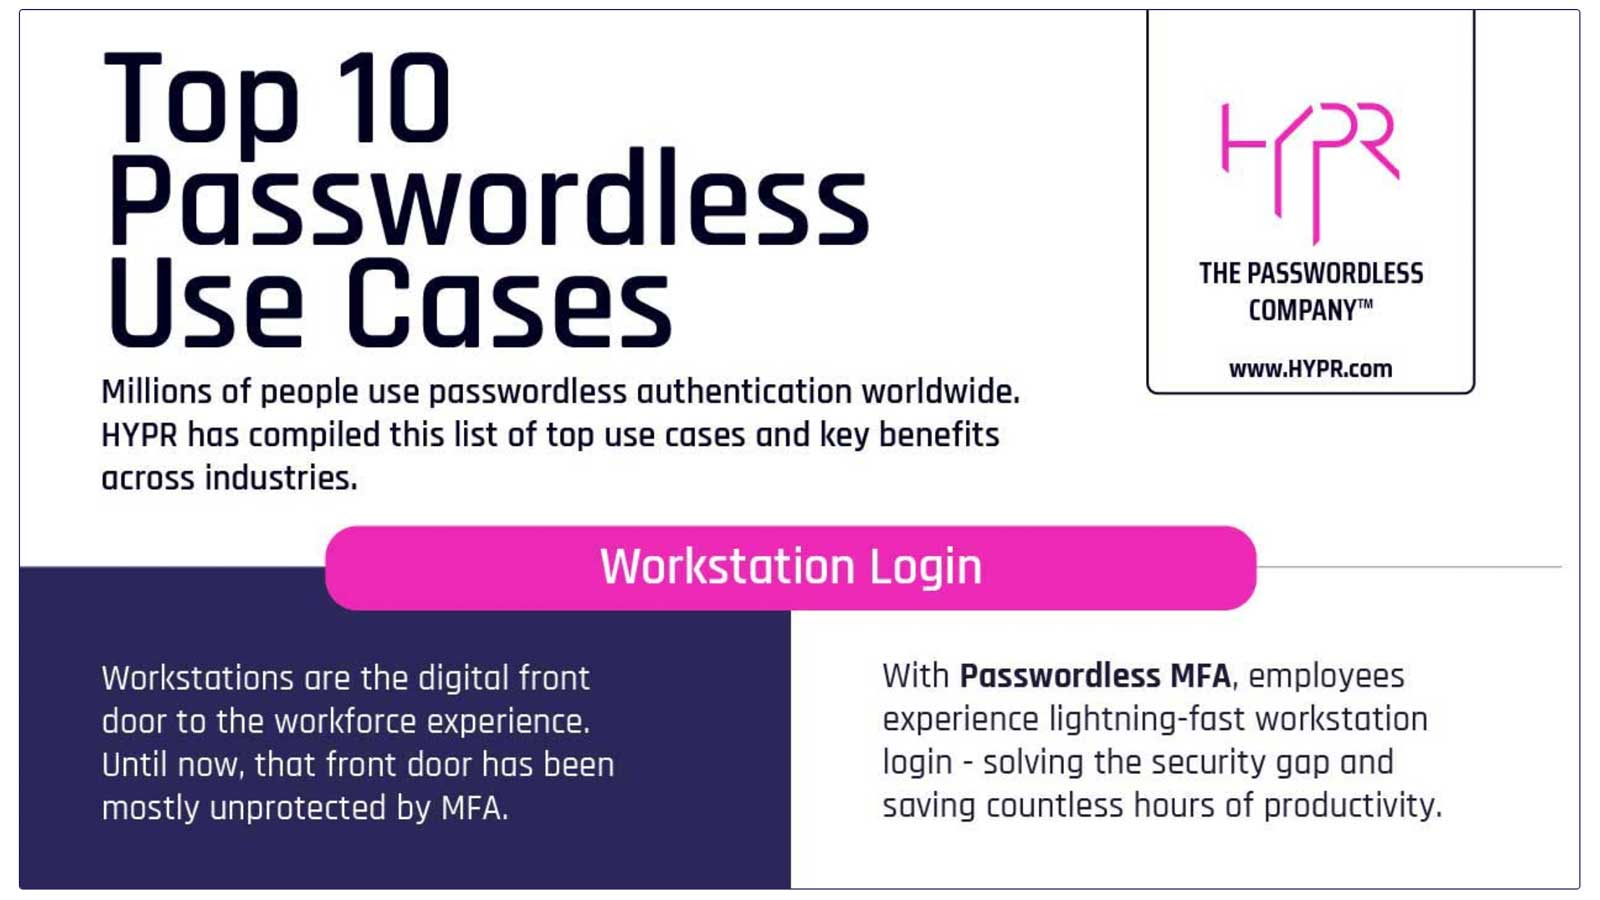 Passwordless Use Cases